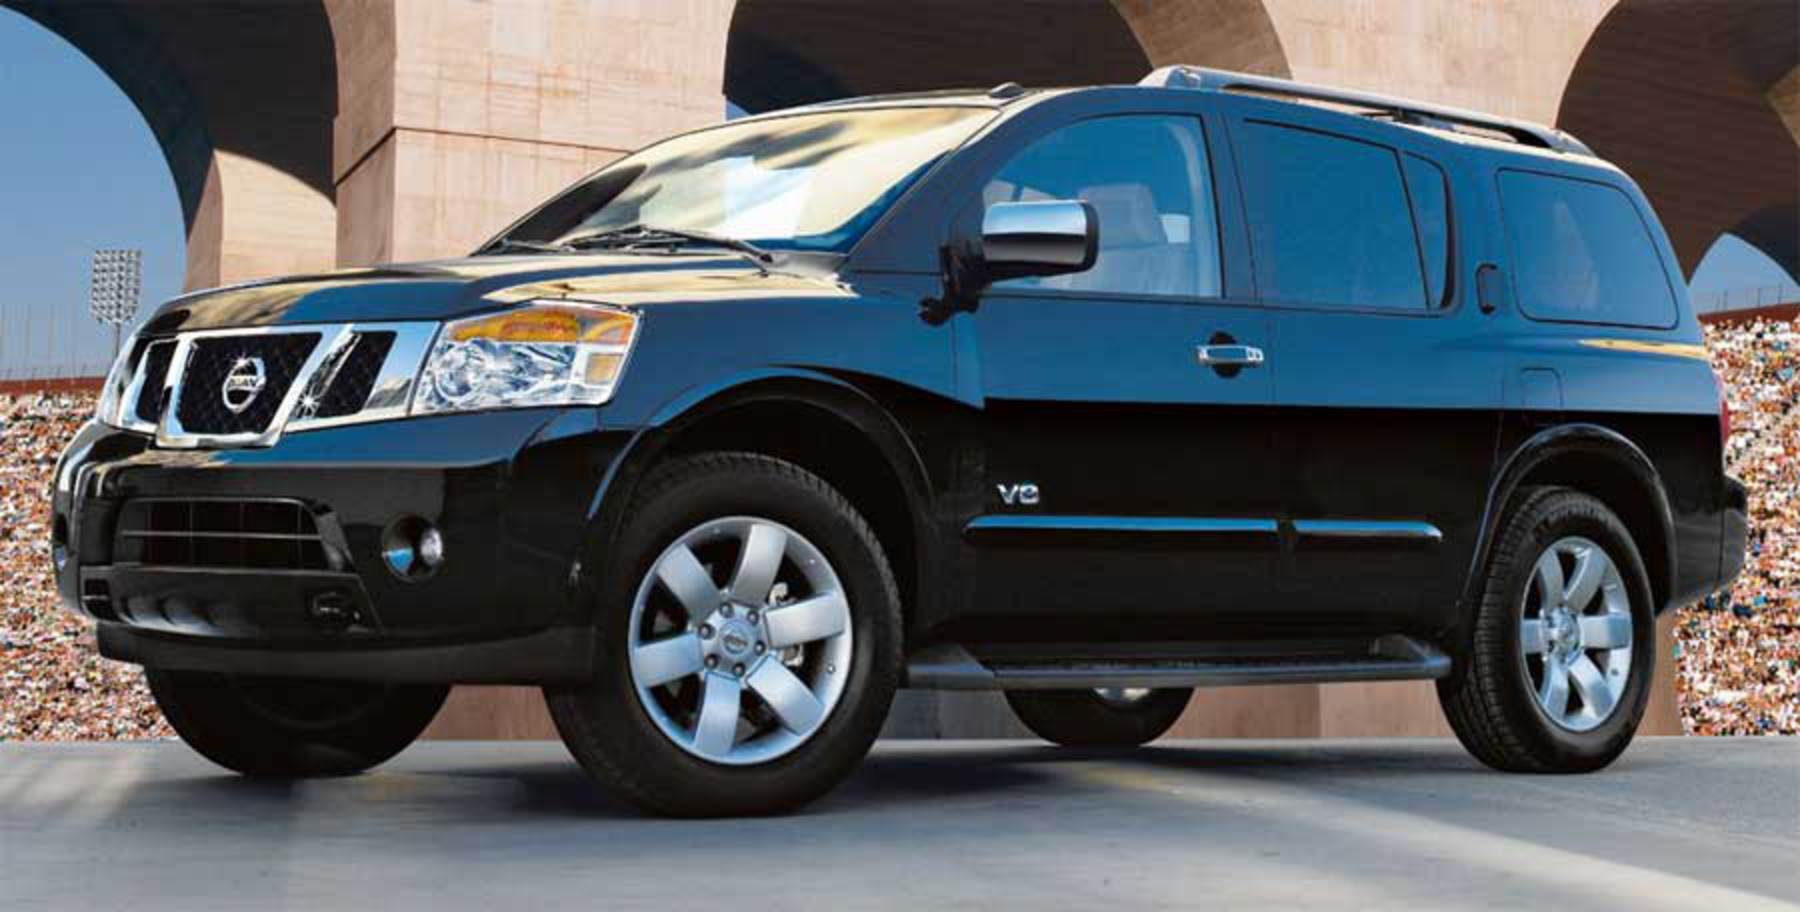 Nissan Armada SE 4x4. View Download Wallpaper. 900x456. Comments